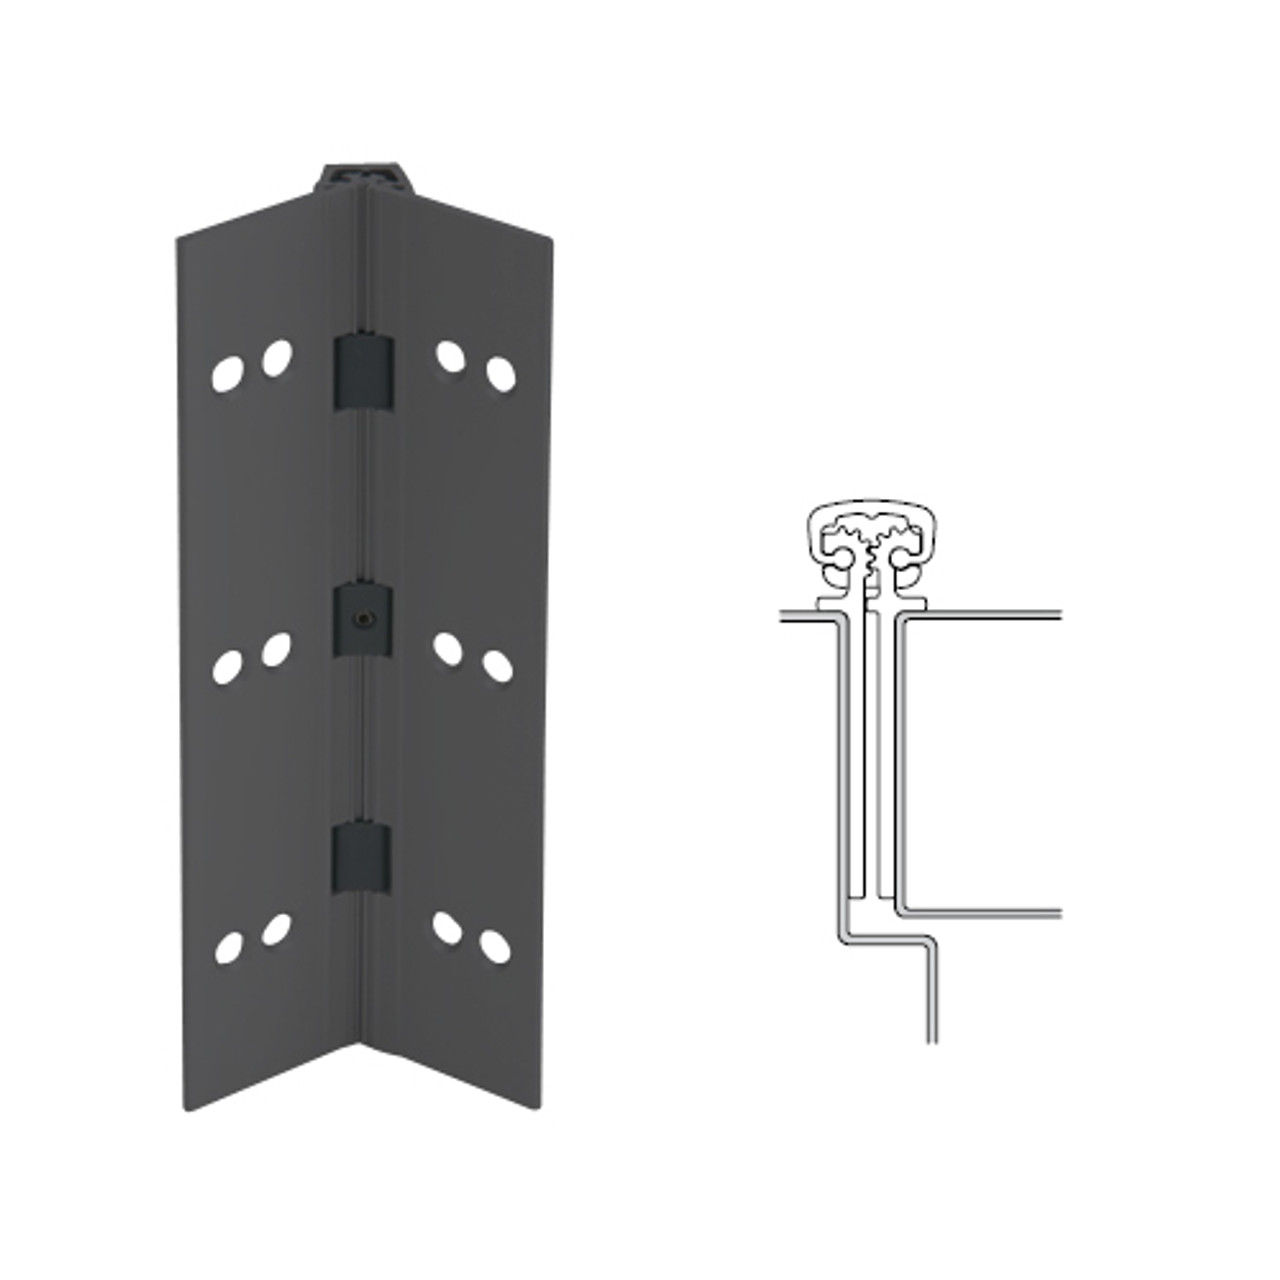 027XY-315AN-83-TFWD IVES Full Mortise Continuous Geared Hinges with Thread Forming Screws in Anodized Black